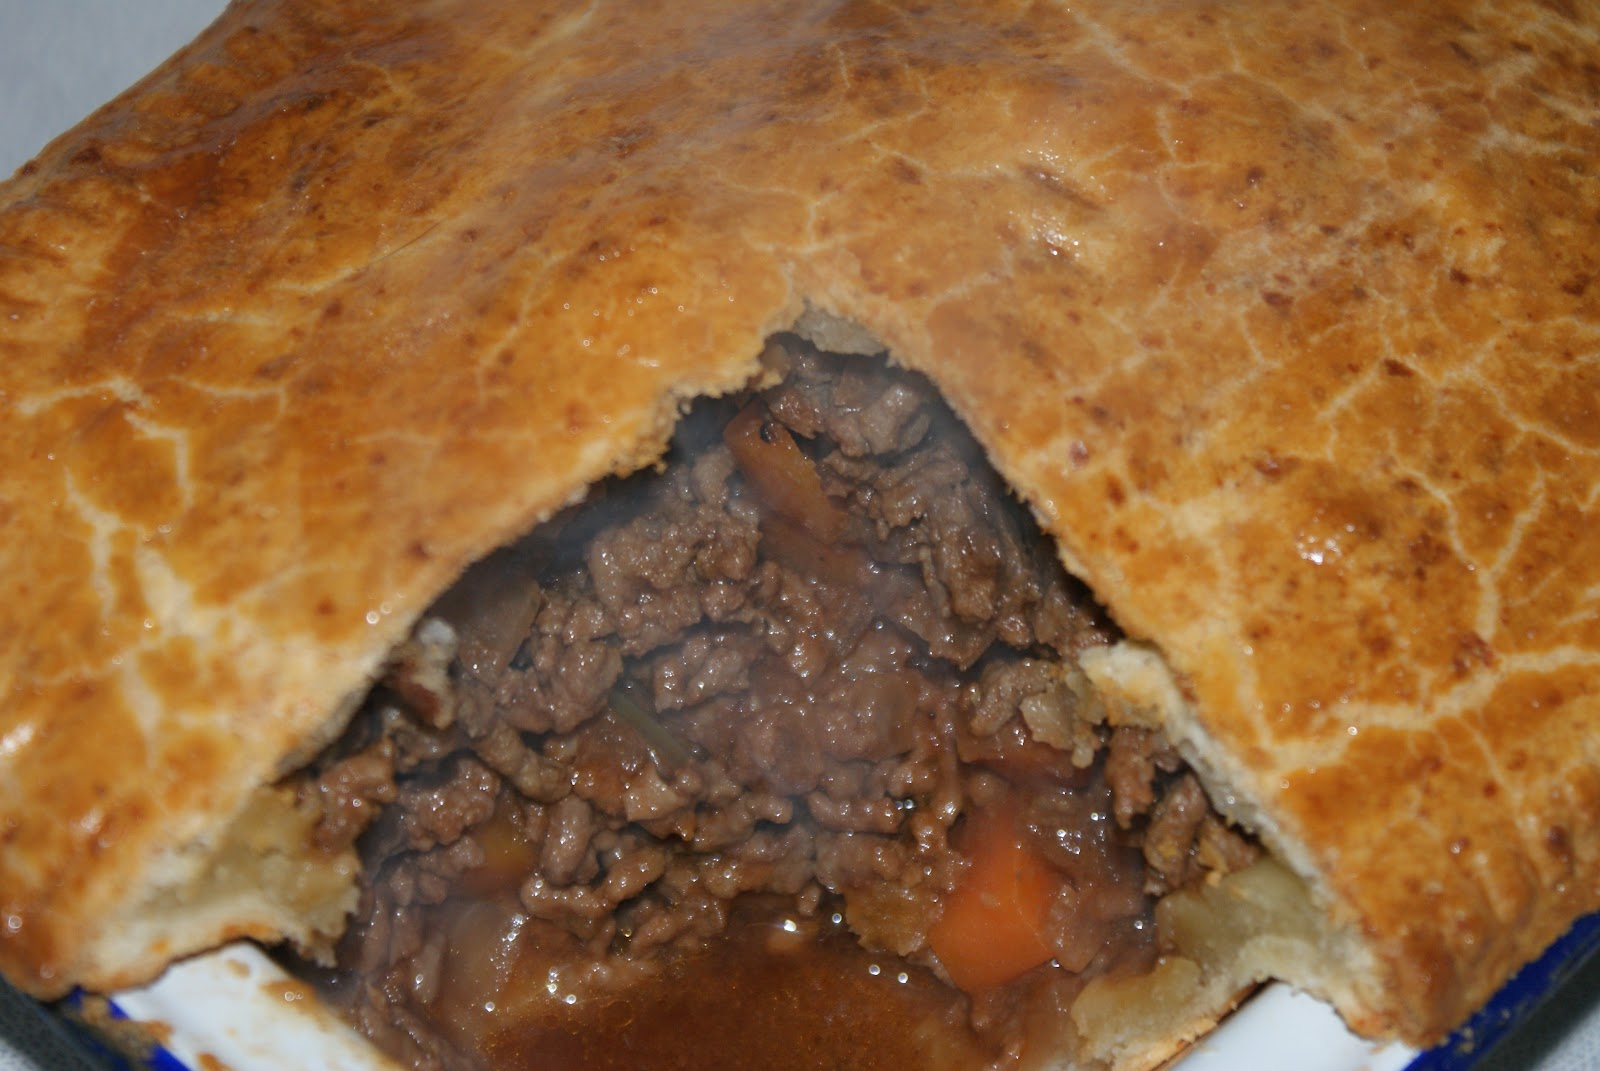 Minced Beef Pie with Cheesy Crust | Baking Recipes and Tutorials - The Pink Whisk & Minced Beef Pie with Cheesy Crust | Baking Recipes and Tutorials ...